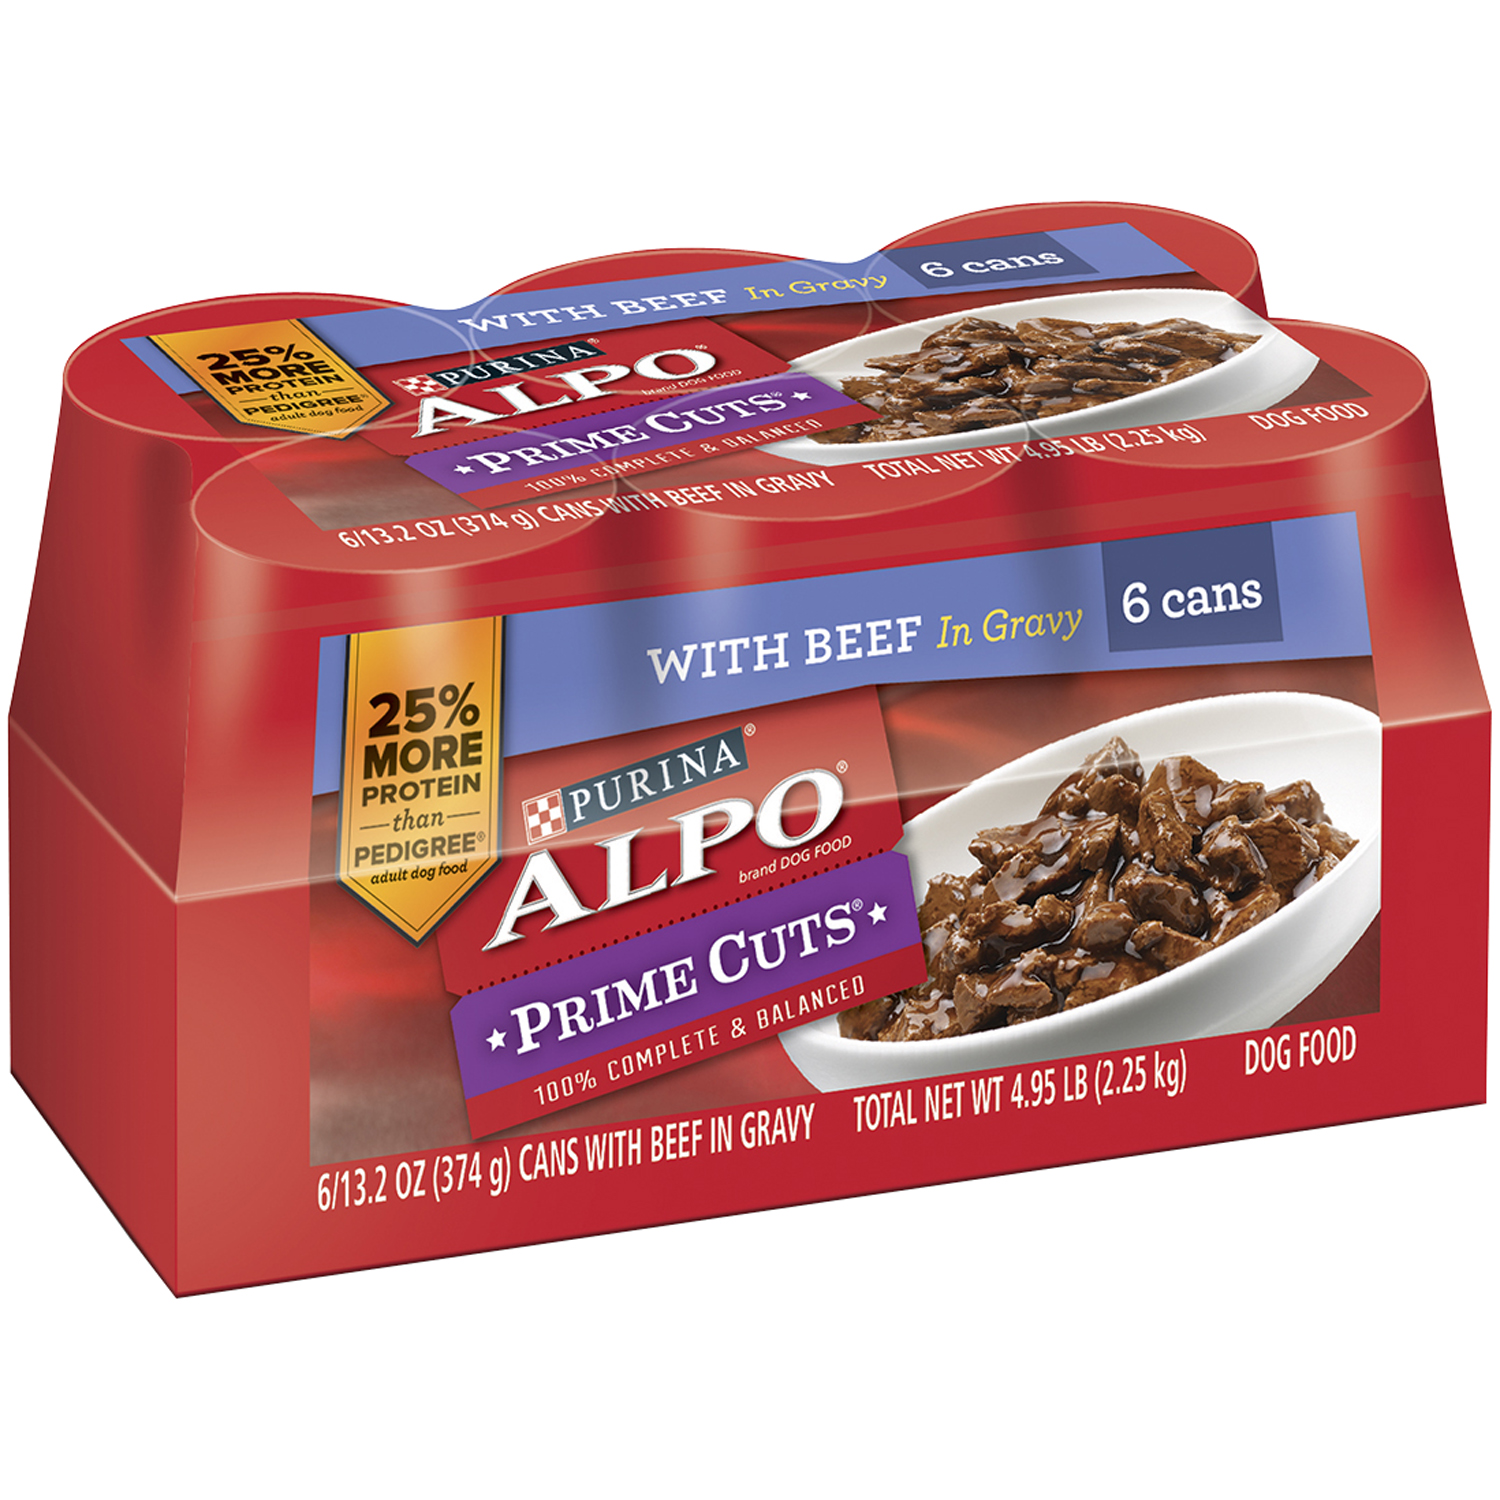 Purina ALPO Prime Cuts With Beef in Gravy Dog Food 6-13.2 oz. Cans